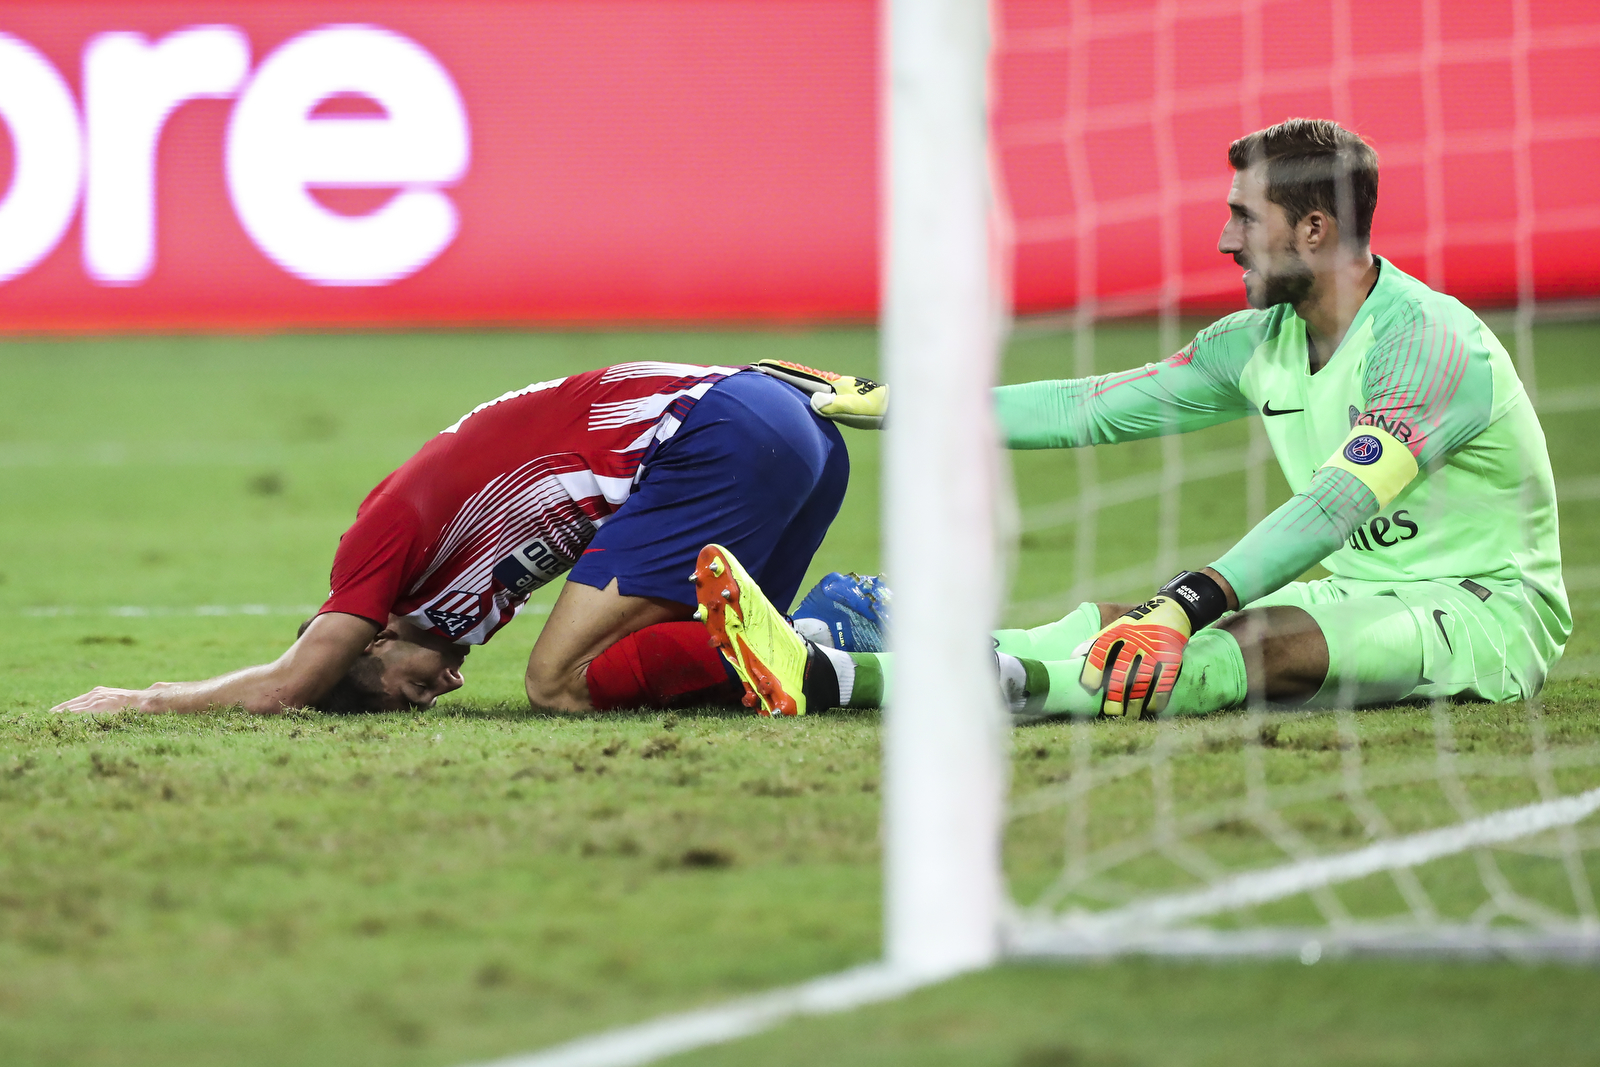 Paris Saint-Germain's Gianluigi Buffon, right, consoles Atletico Madrid's Luciano Vietto after the International Champions Cup match between Paris Saint-Germain and Atletico Madrid in Singapore, Monday, July 30, 2018. (AP Photo/Yong Teck Lim)